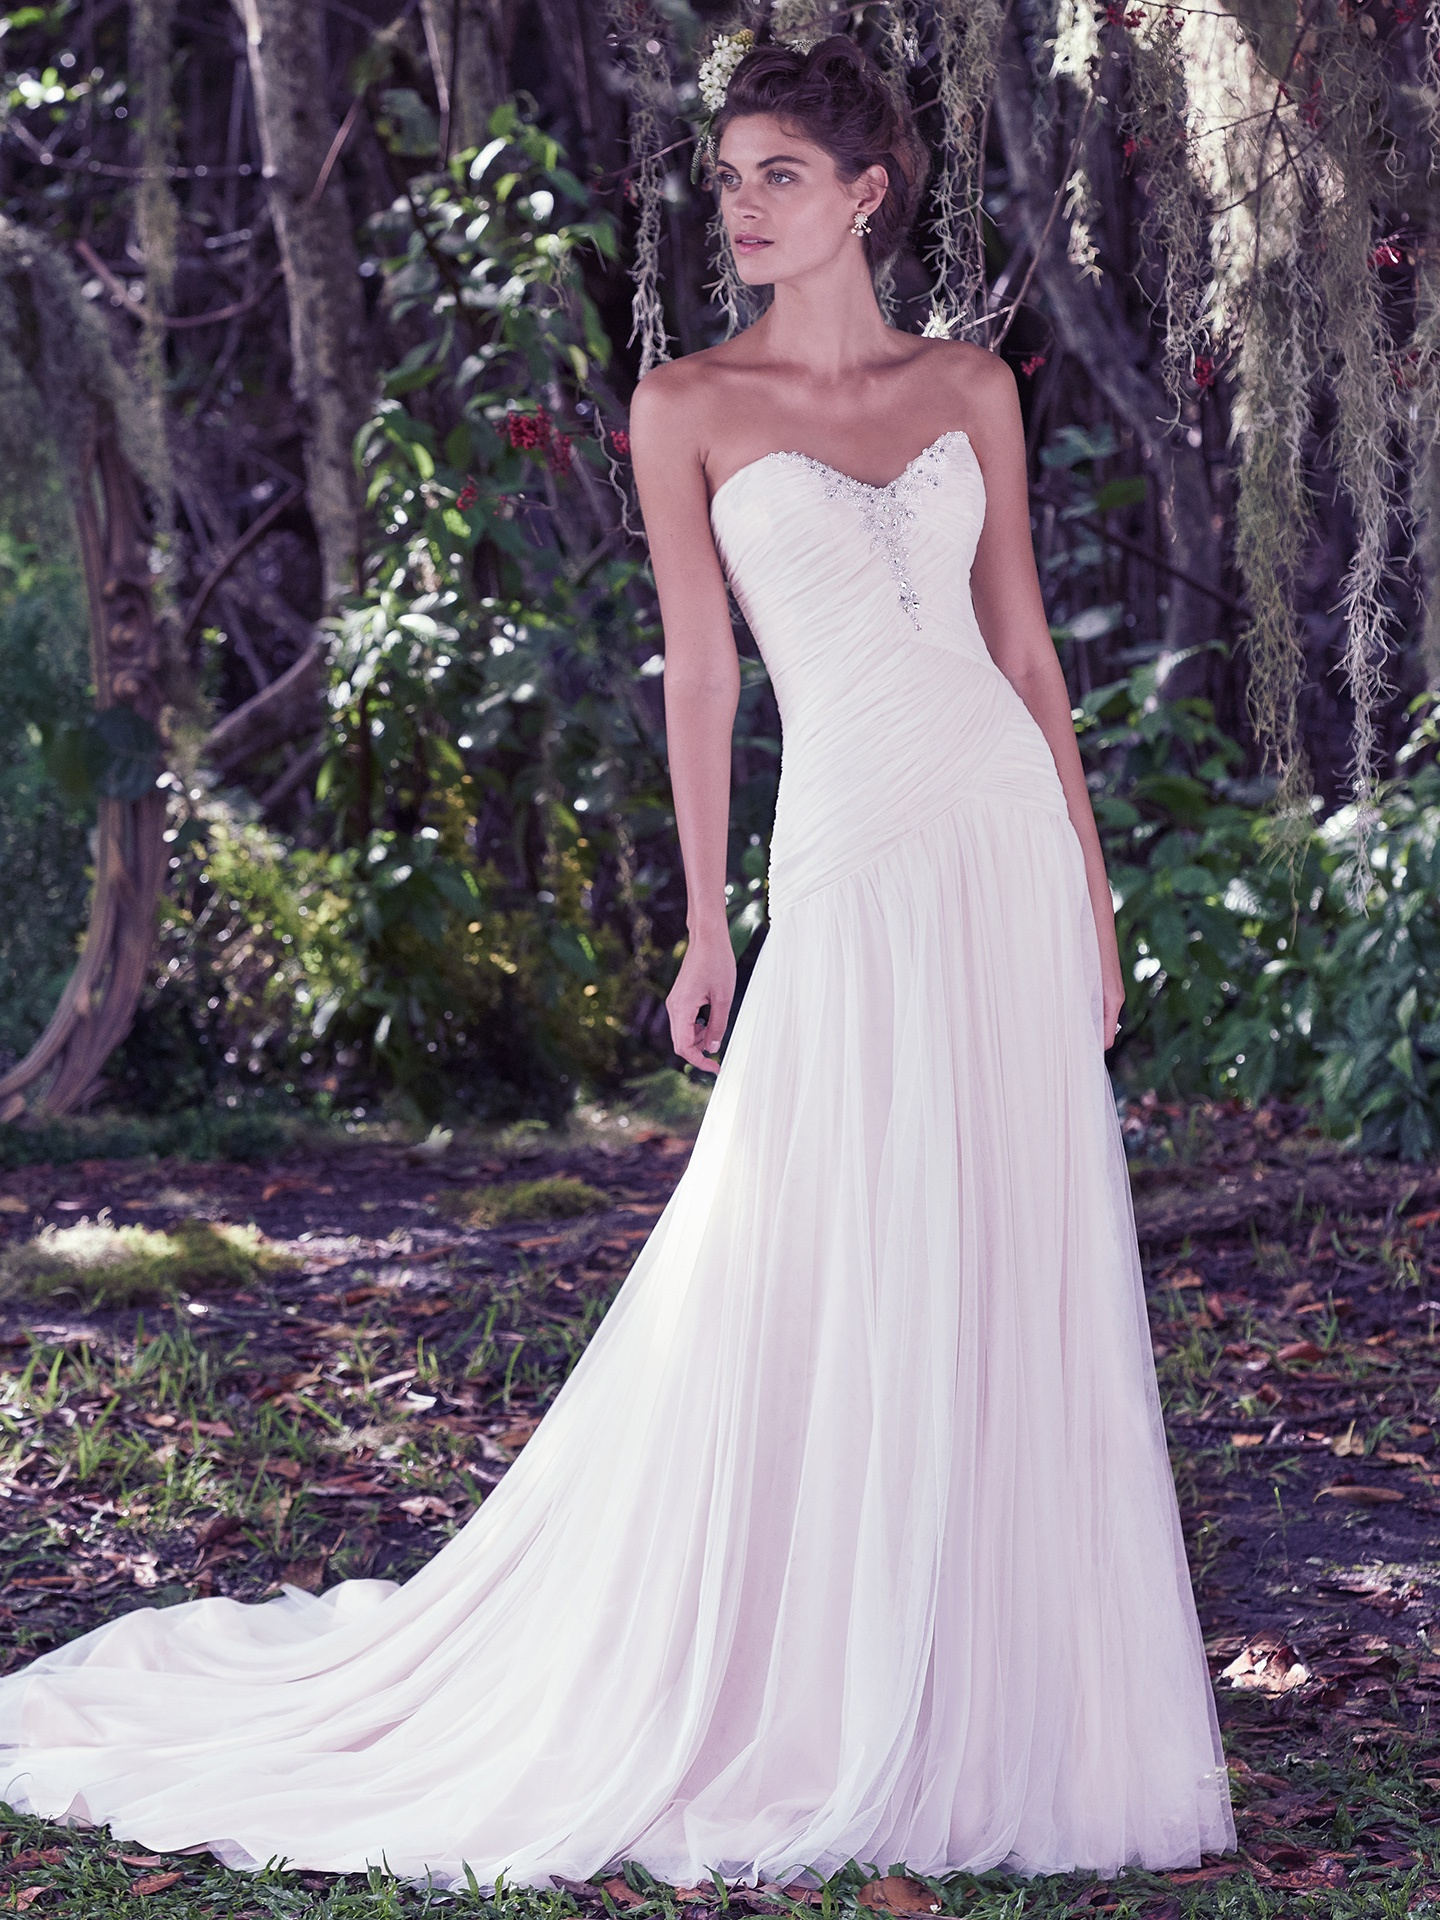 Even more blush wedding dresses by maggie sottero love maggie haven delicate lace motifs accent ruched tulle in this unapologetically pretty fit and flare complete with corset back closure and sweetheart neckline junglespirit Gallery